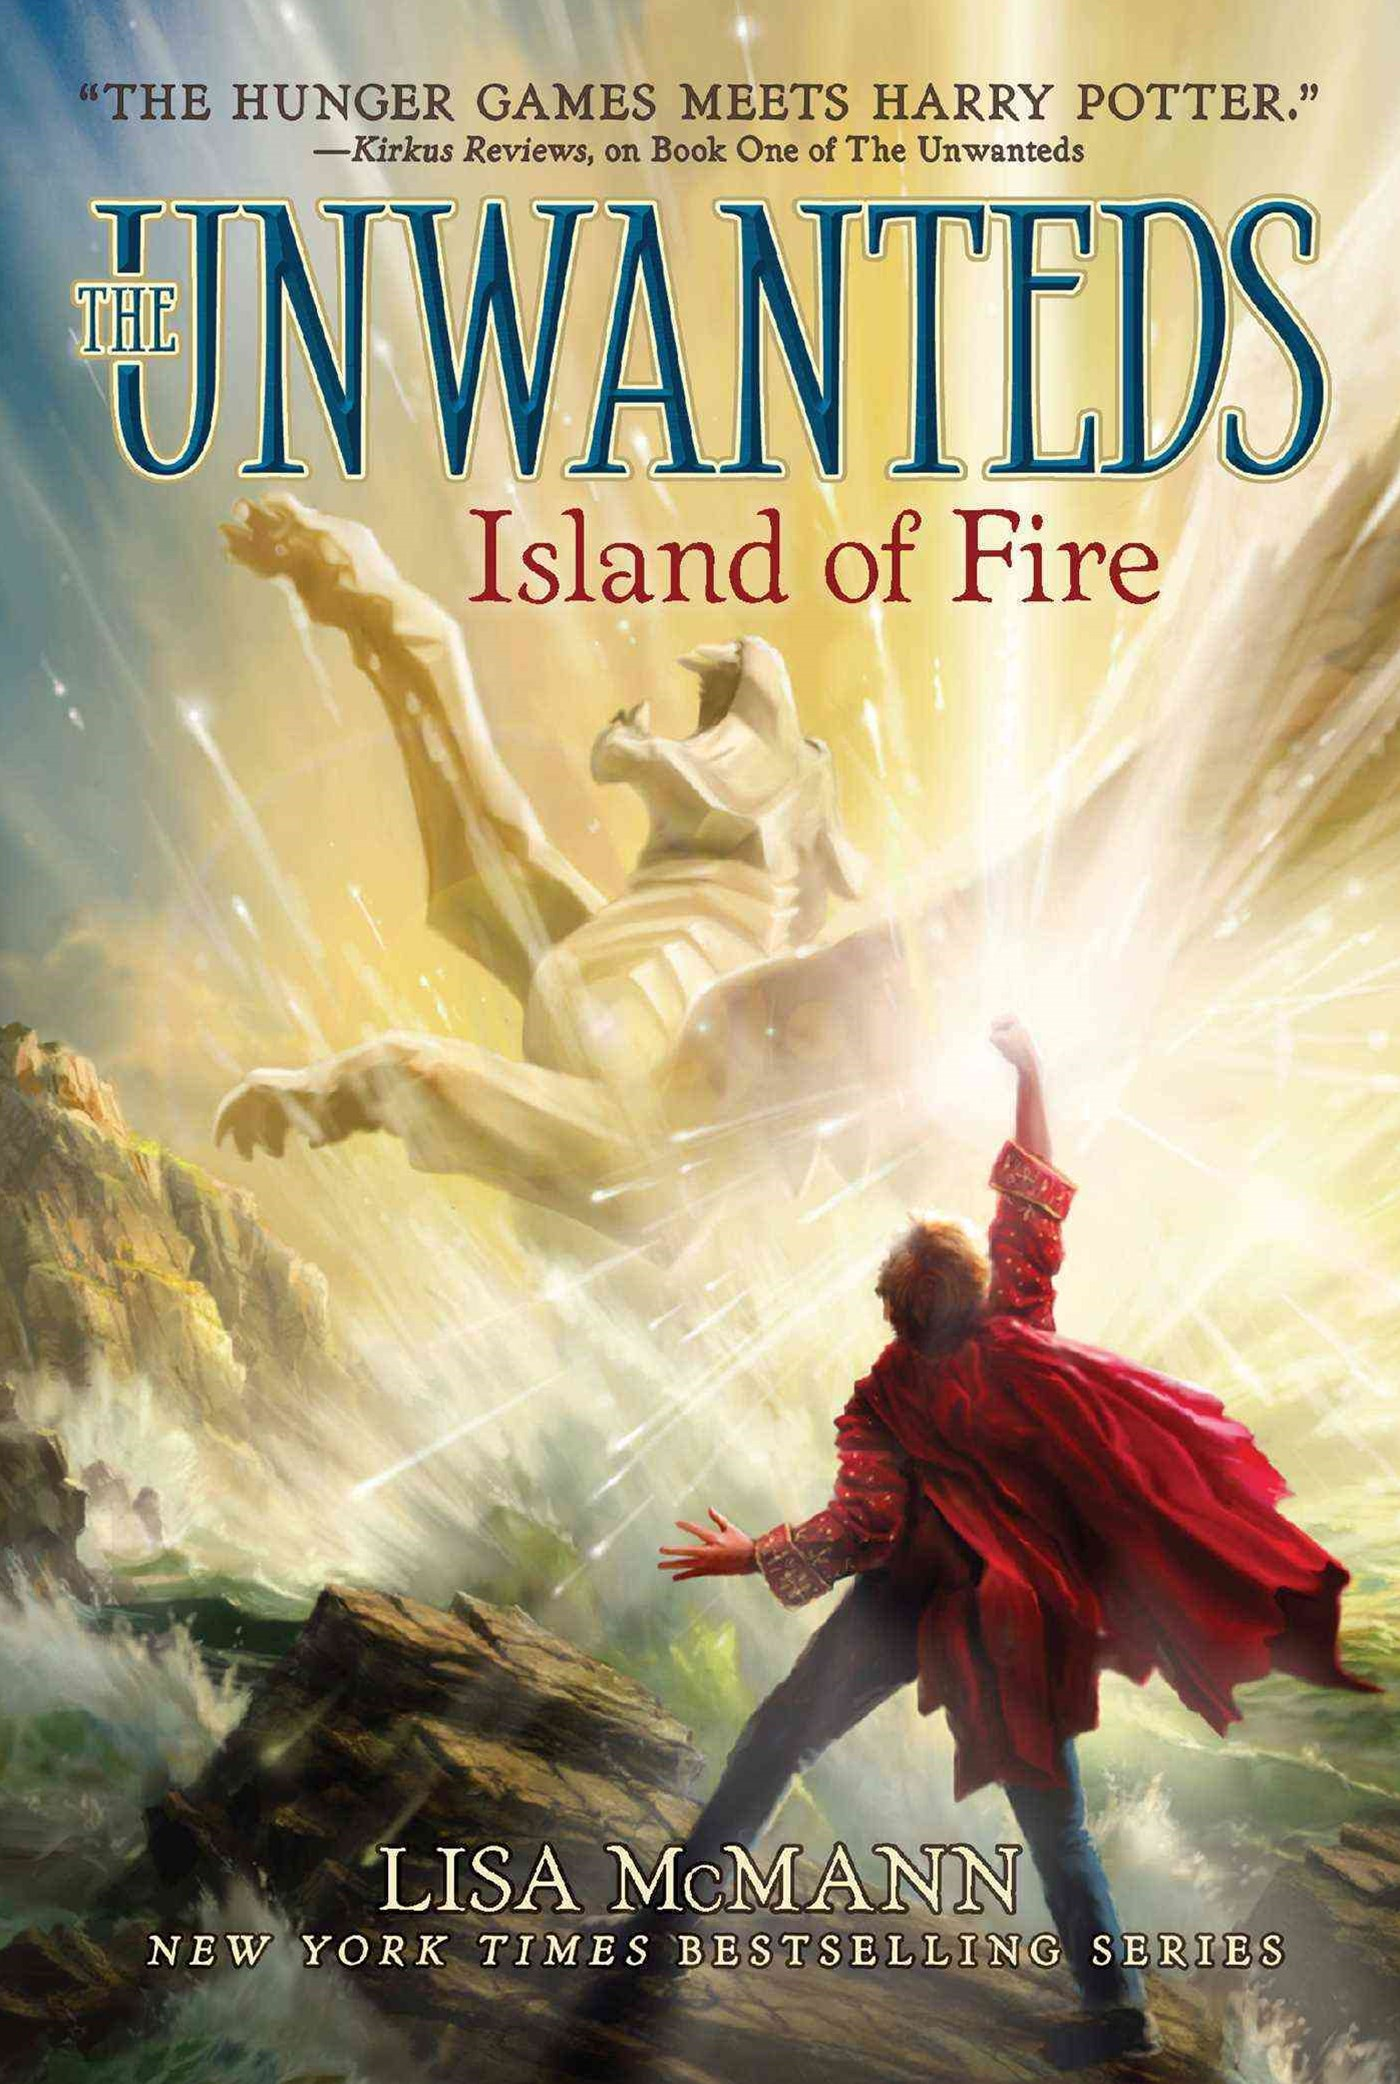 The Unwanteds #3: Island of Fire